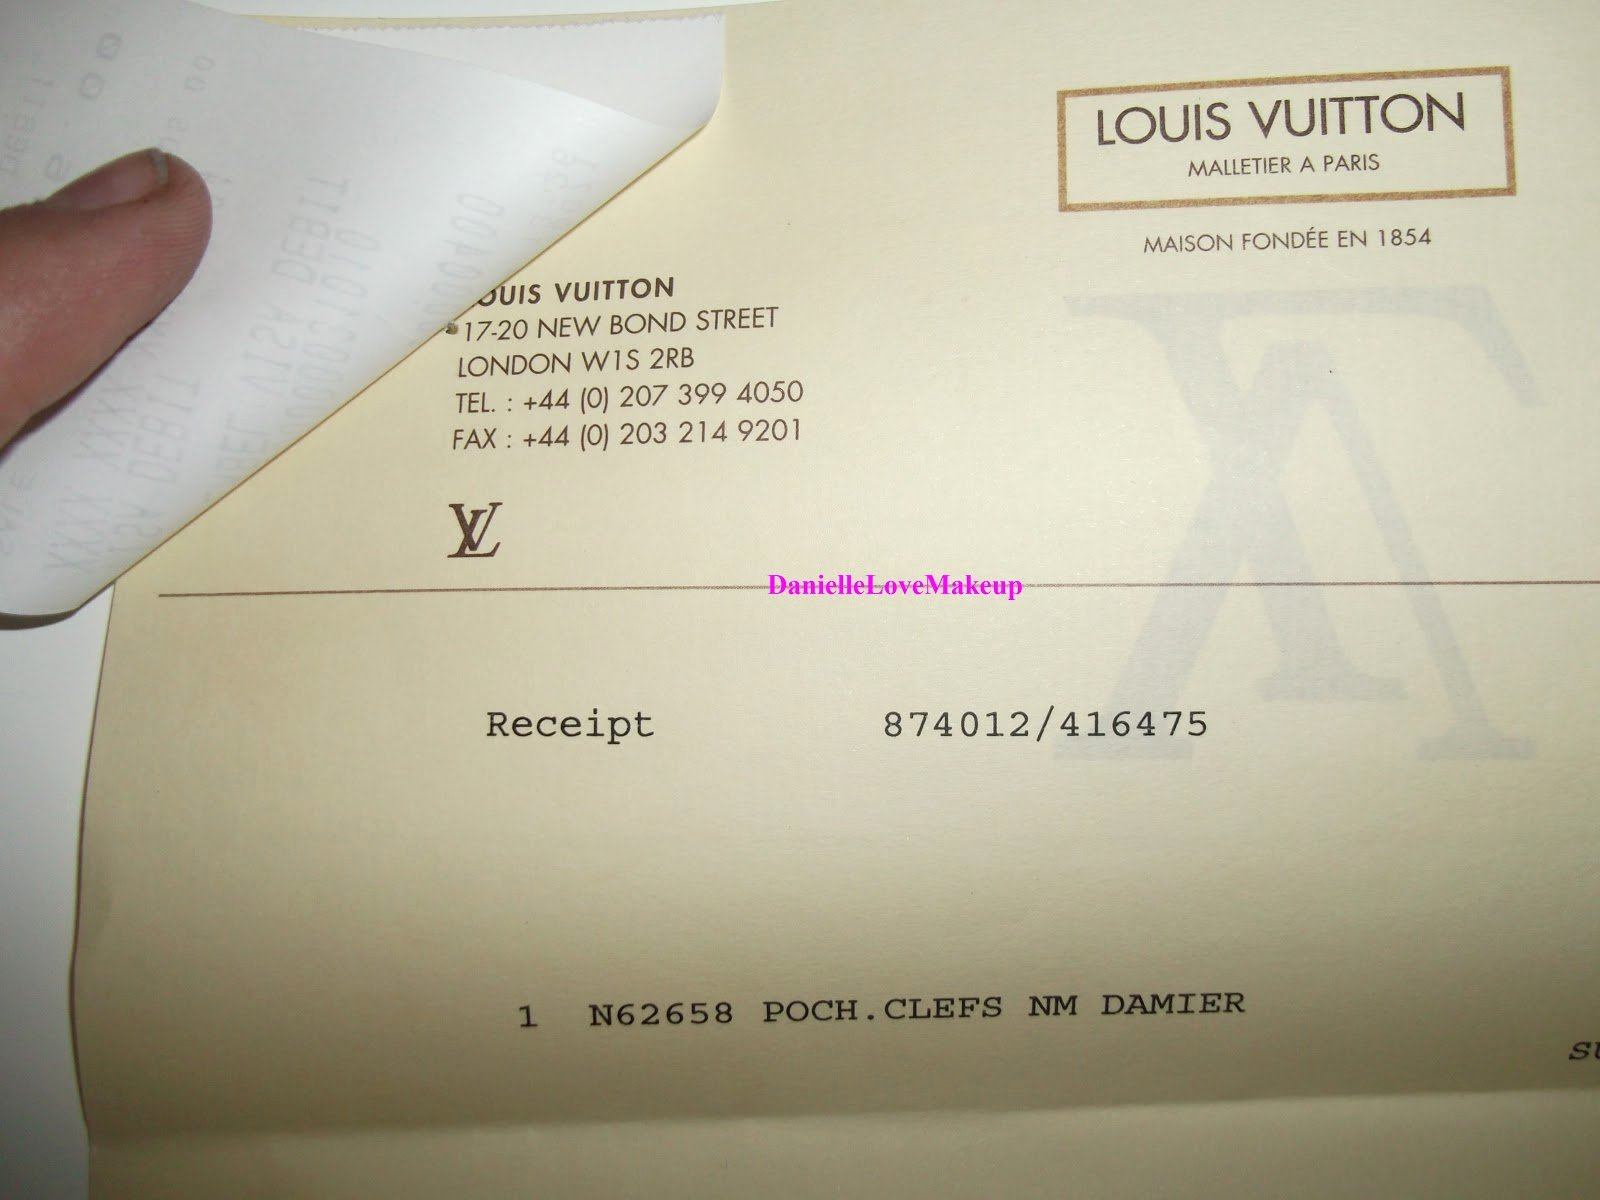 Louis Vuitton Receipt Template Awesome Index Of Cdn 23 2004 31